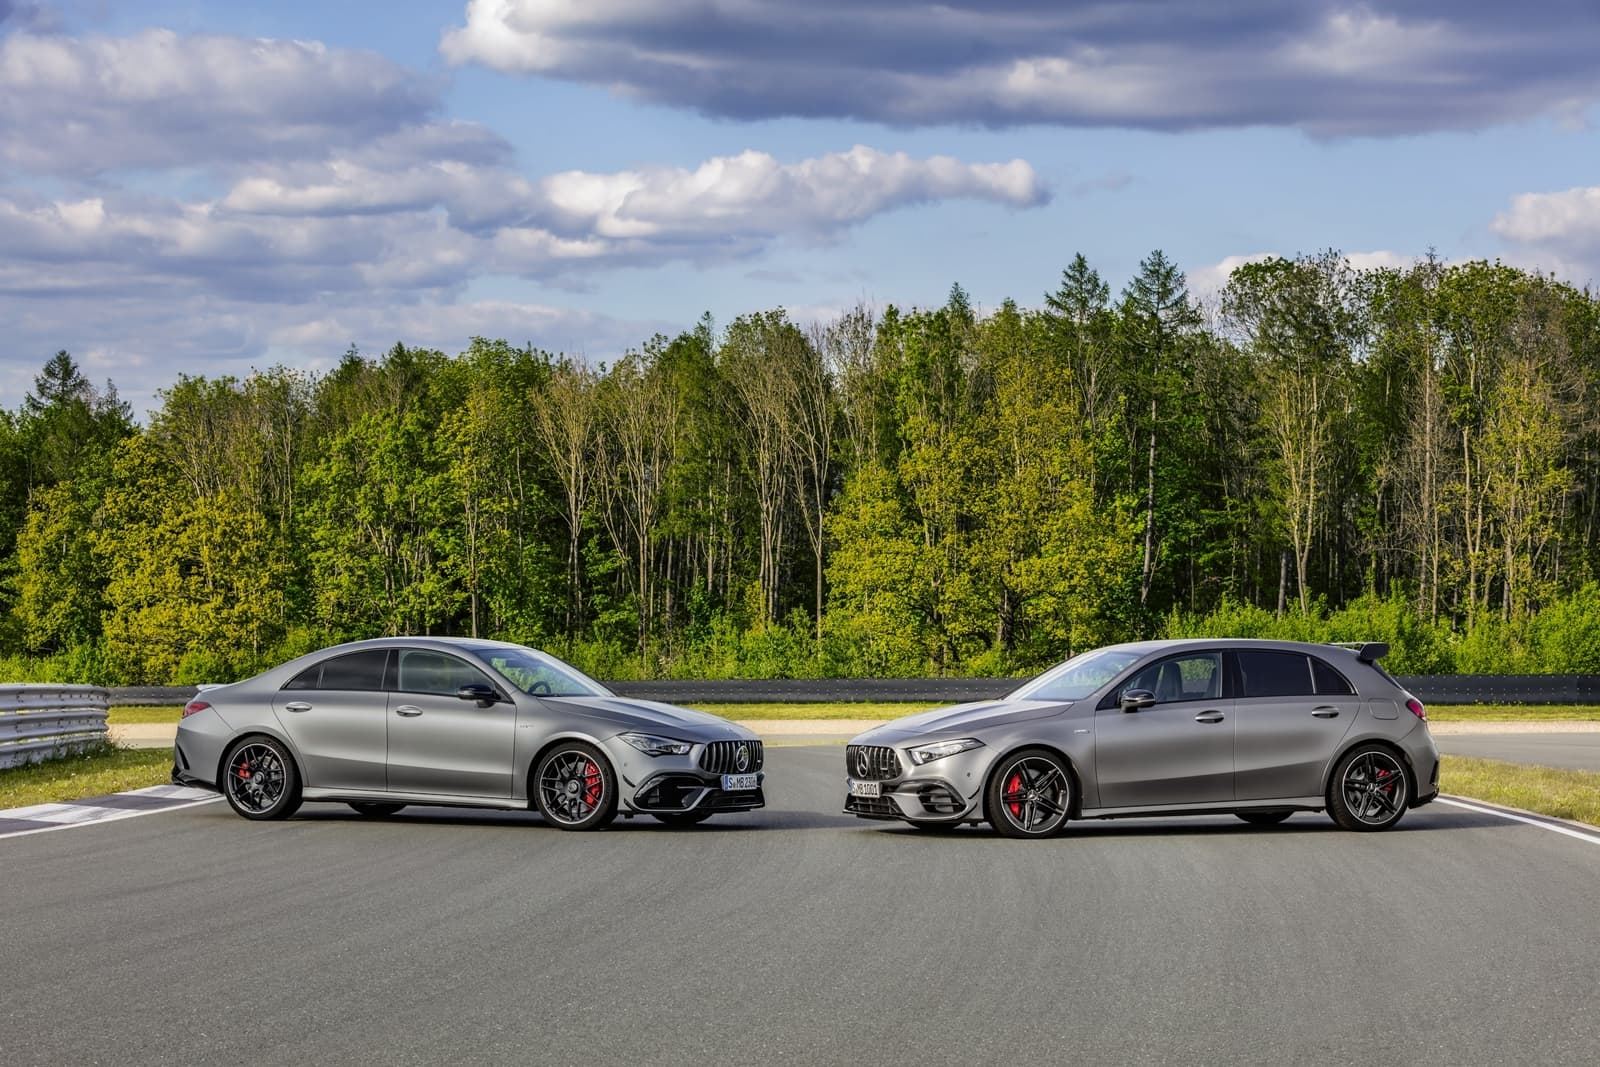 Mercedes Amg A 45 S 4matic+ Und Cla 45 S 4matic+ (2019) Mercedes Amg A 45 S 4matic+ And Cla 45 S 4matic+ (2019)